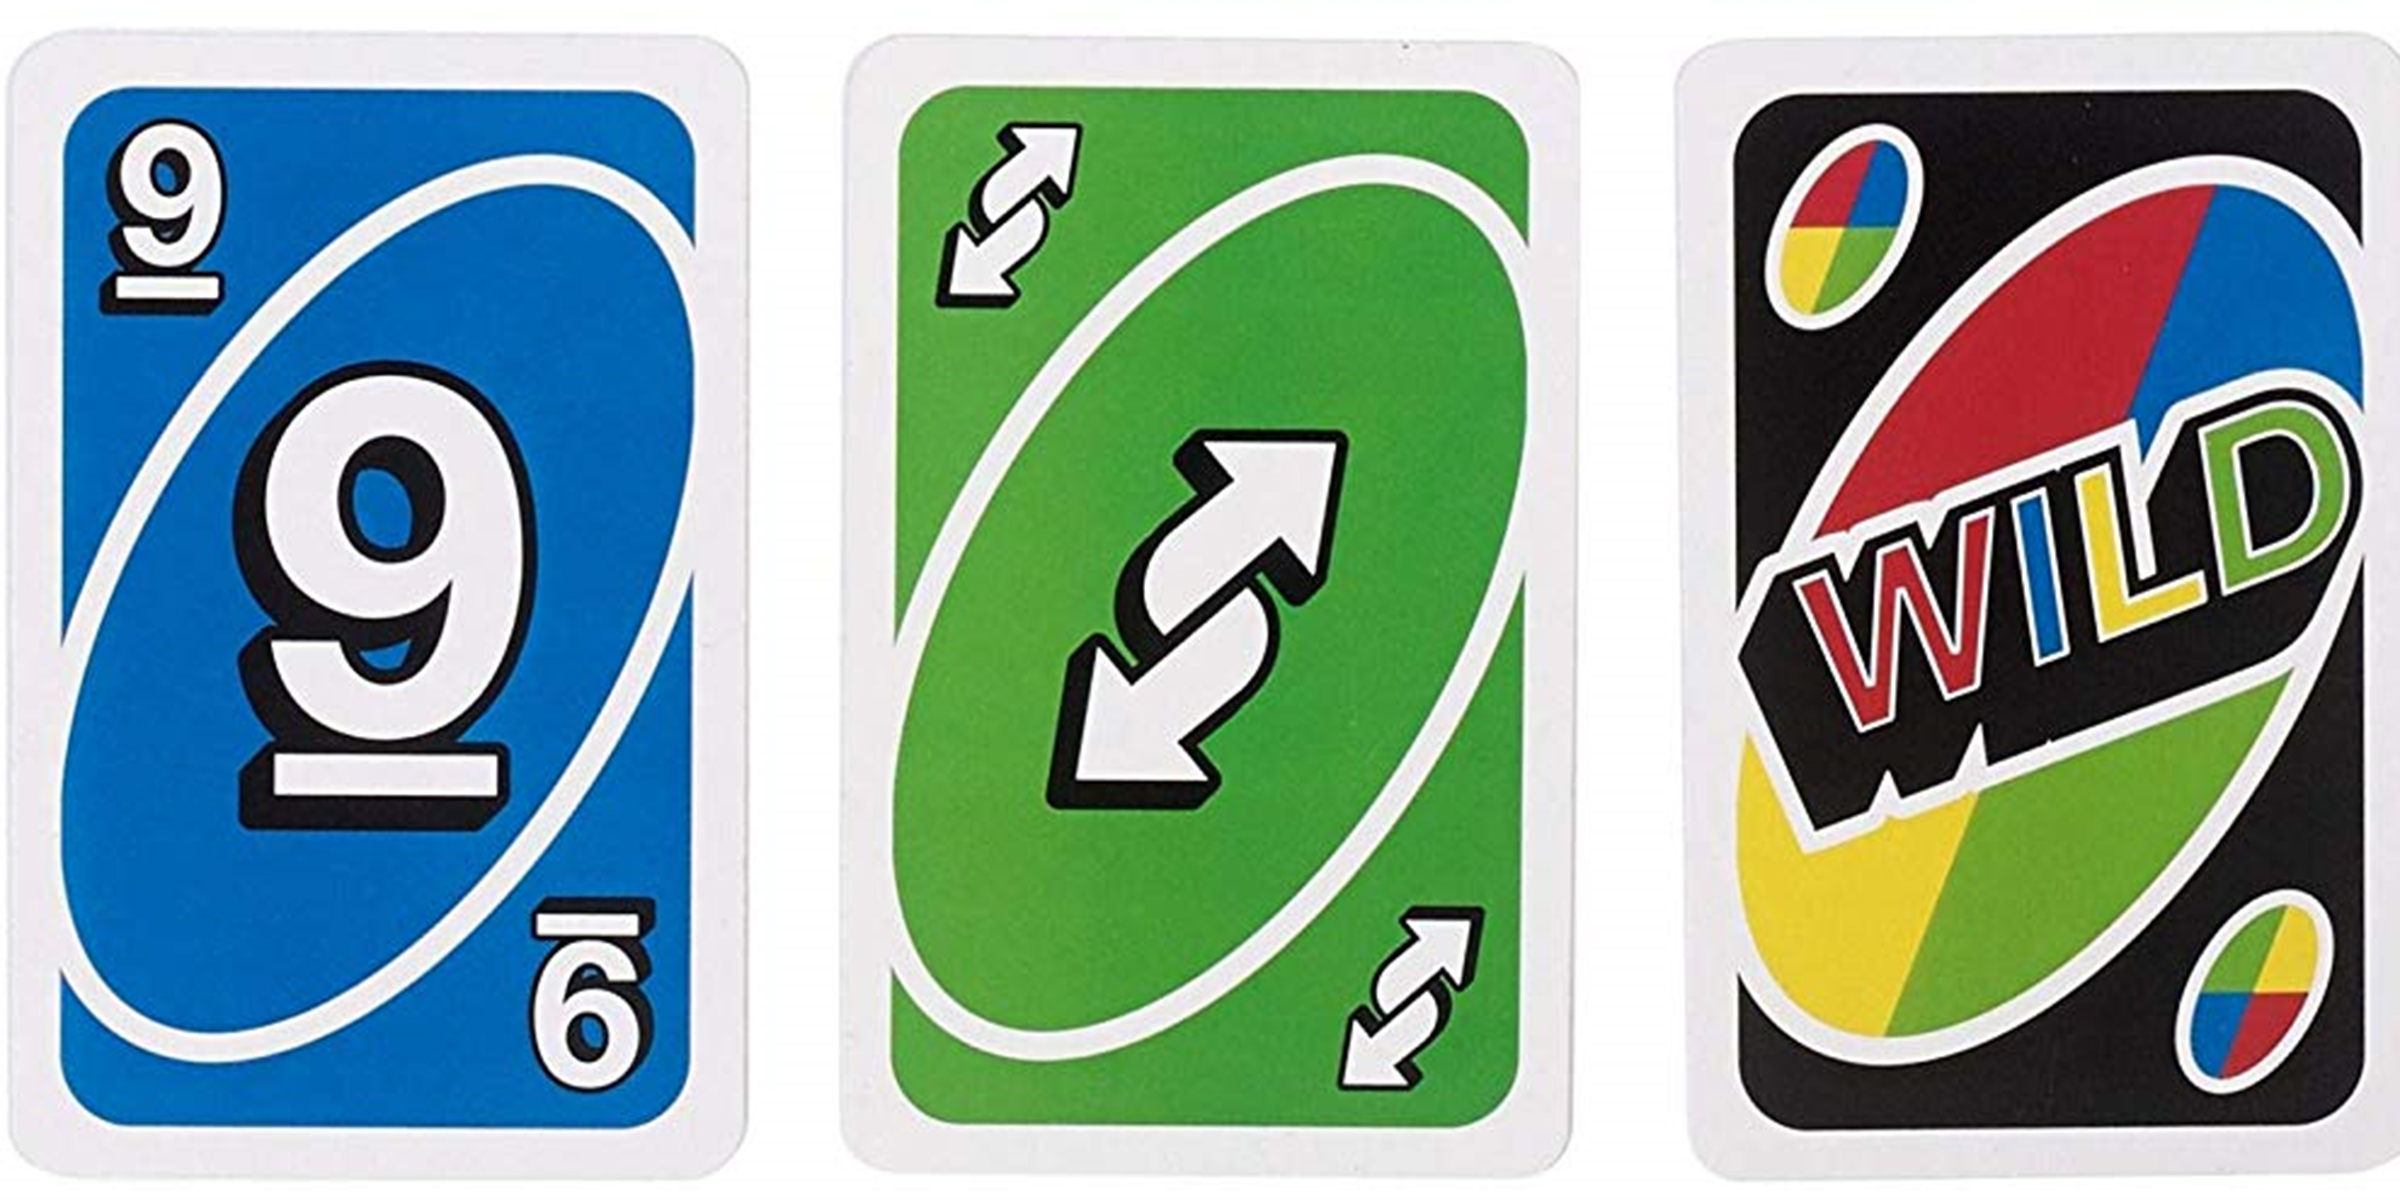 Uno's Twitter announces this move is illegal and people are